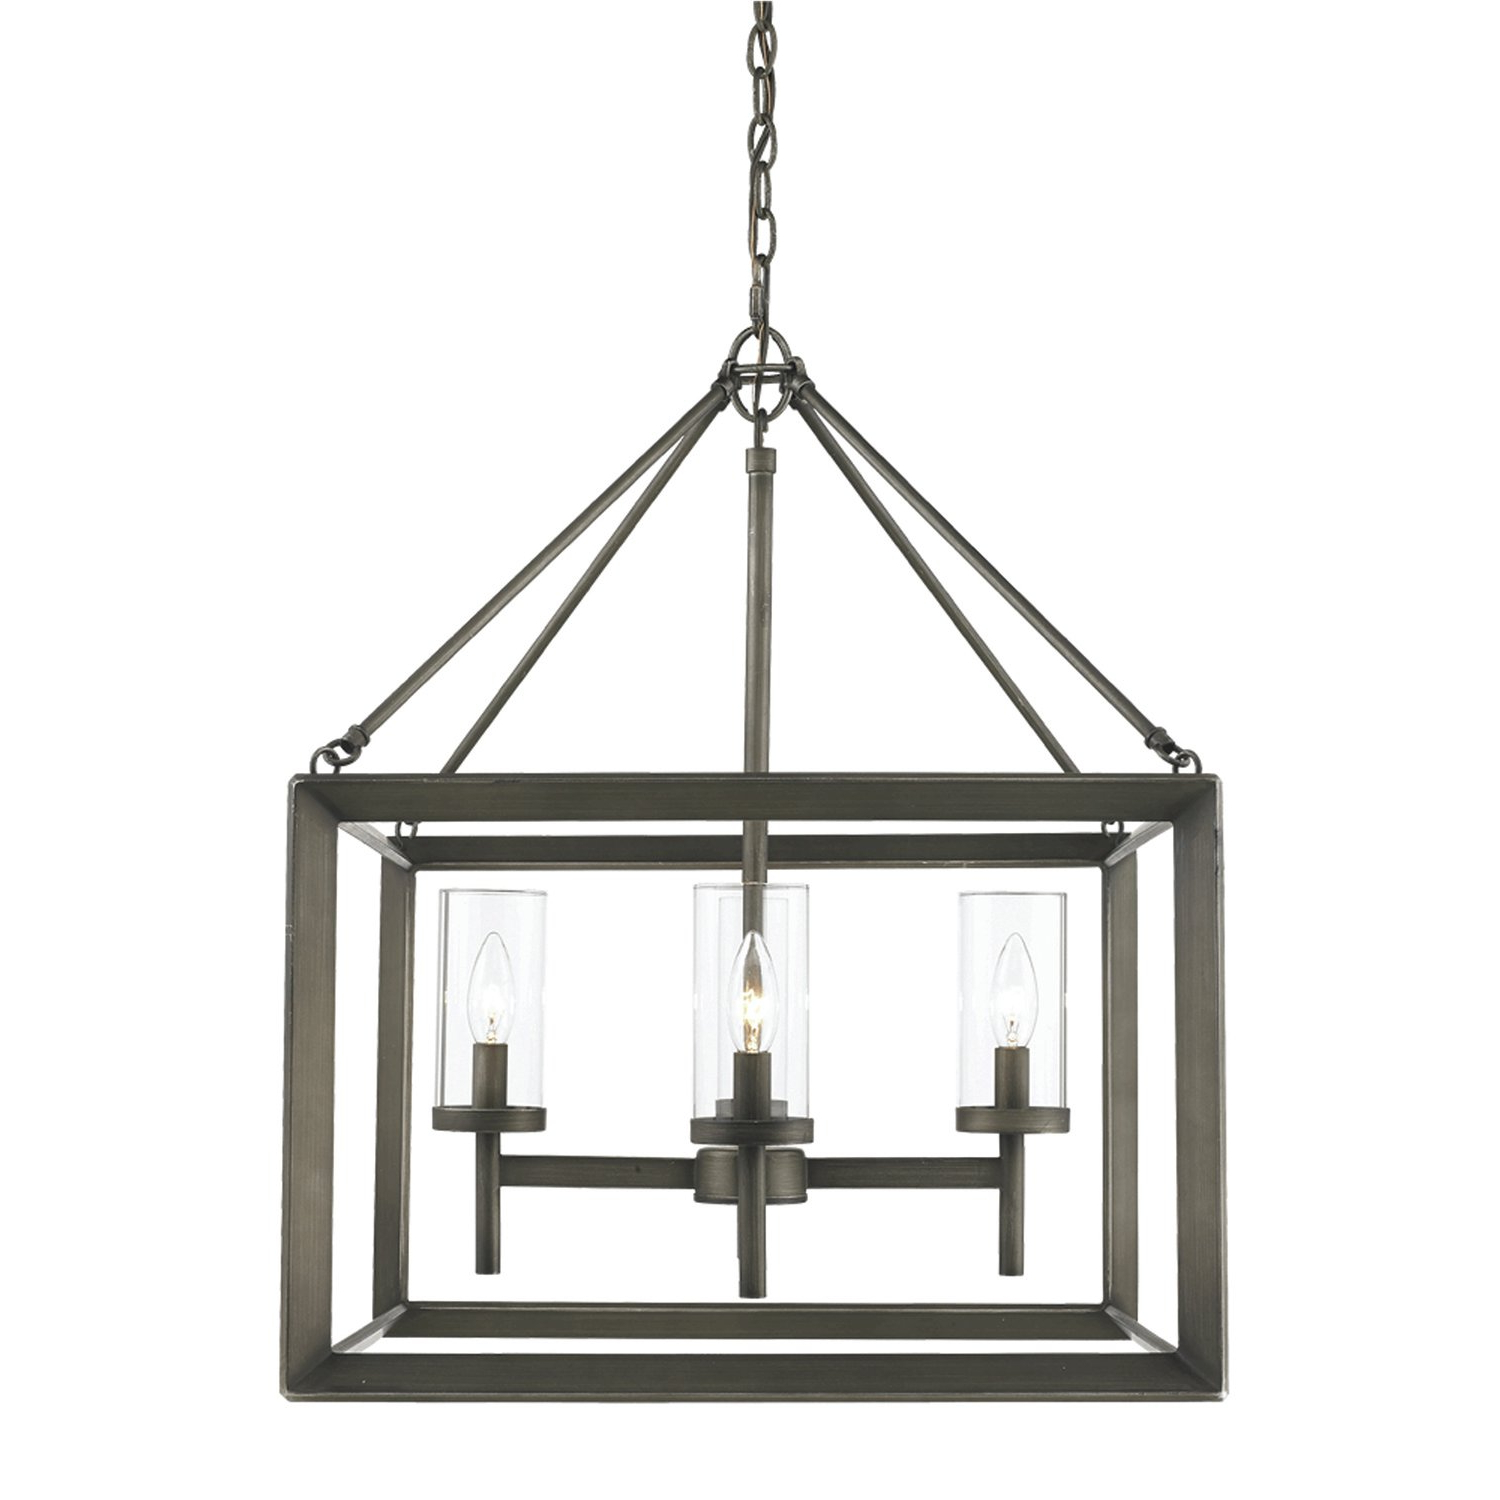 Most Recent Three Posts Thorne 4 Light Lantern Pendant Regarding Thorne 4 Light Lantern Rectangle Pendants (View 6 of 25)